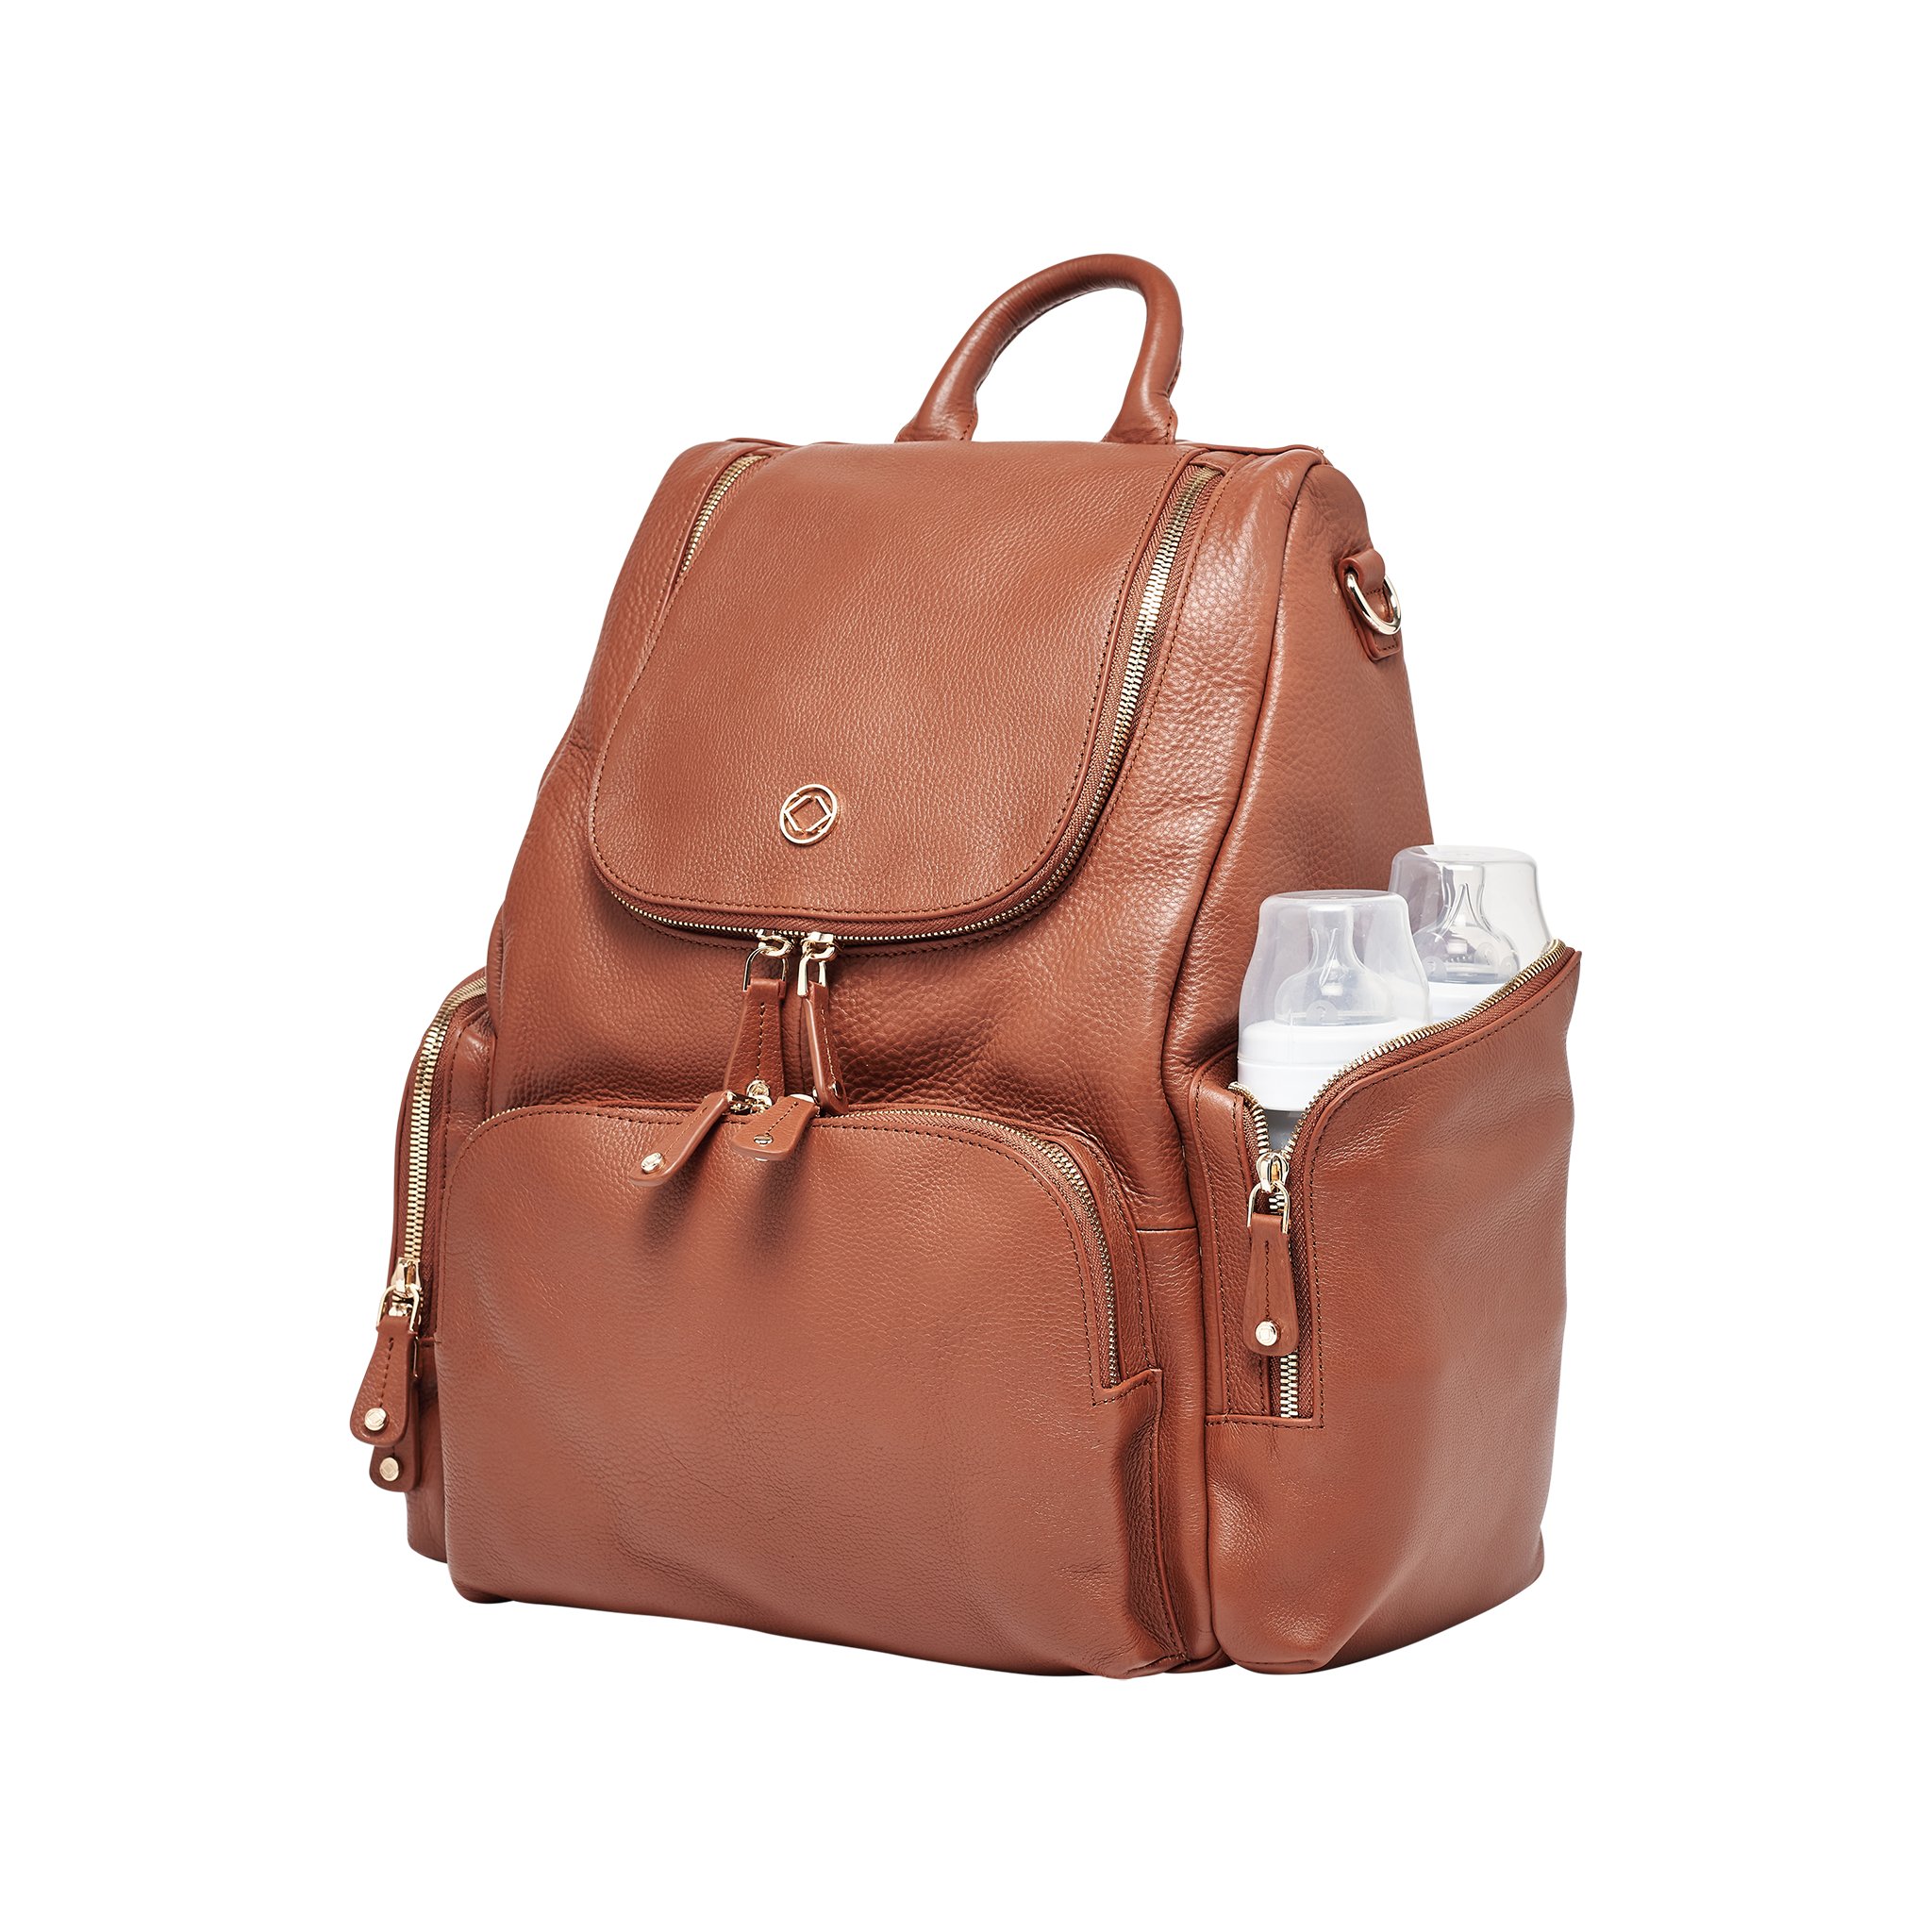 The stunning colour and pockets-a-plenty make our tan baby changing backpack ideal for mums wanting to be functional and fashionable.